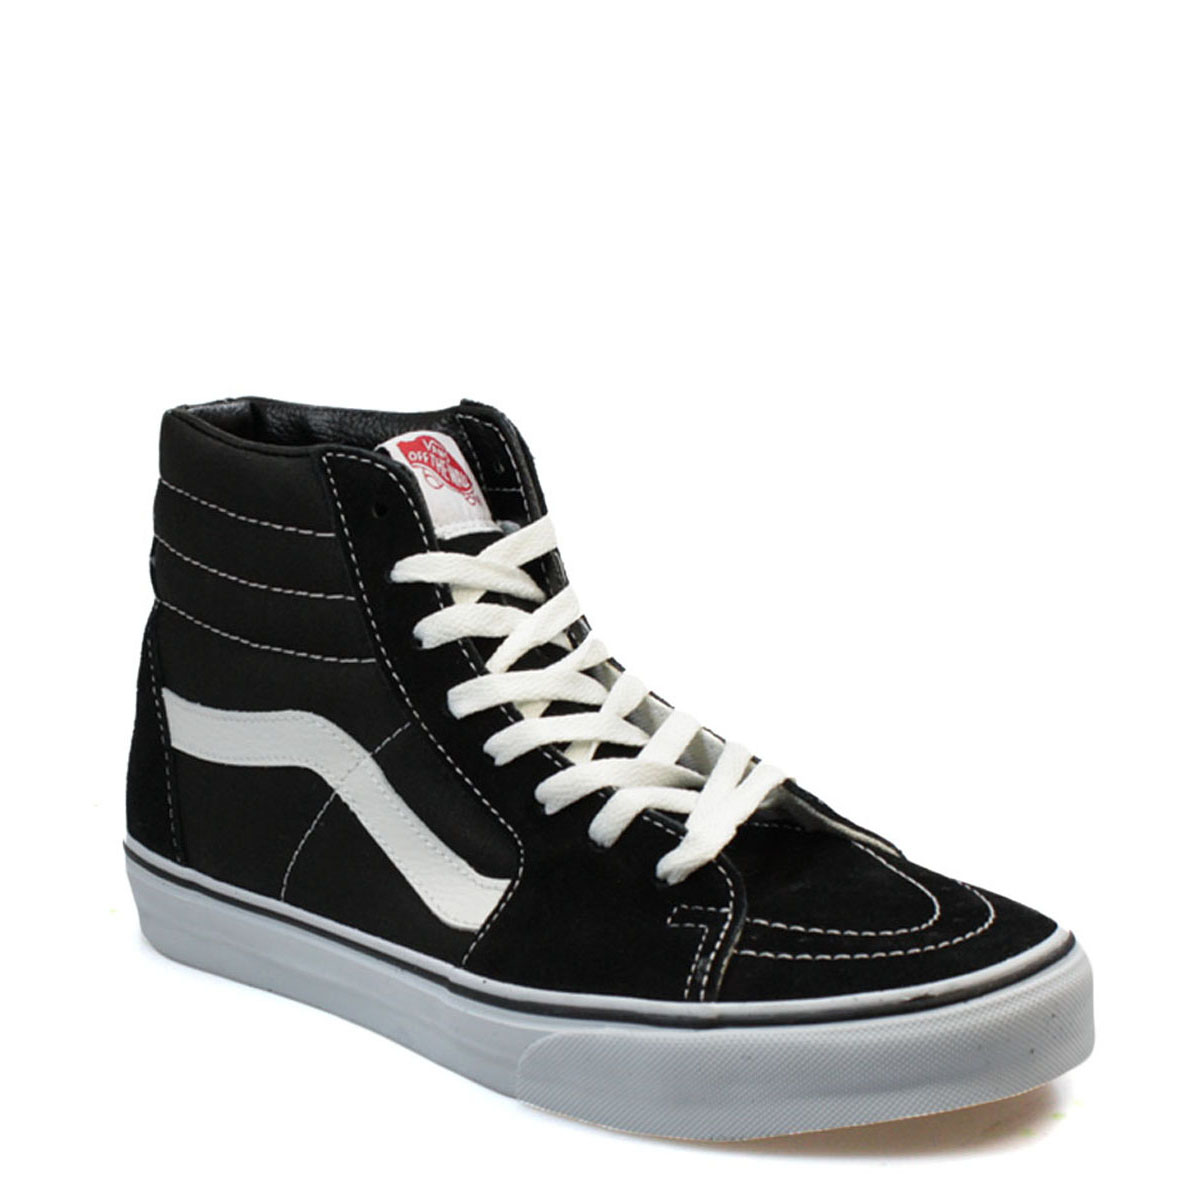 Black High Top Casual Shoes